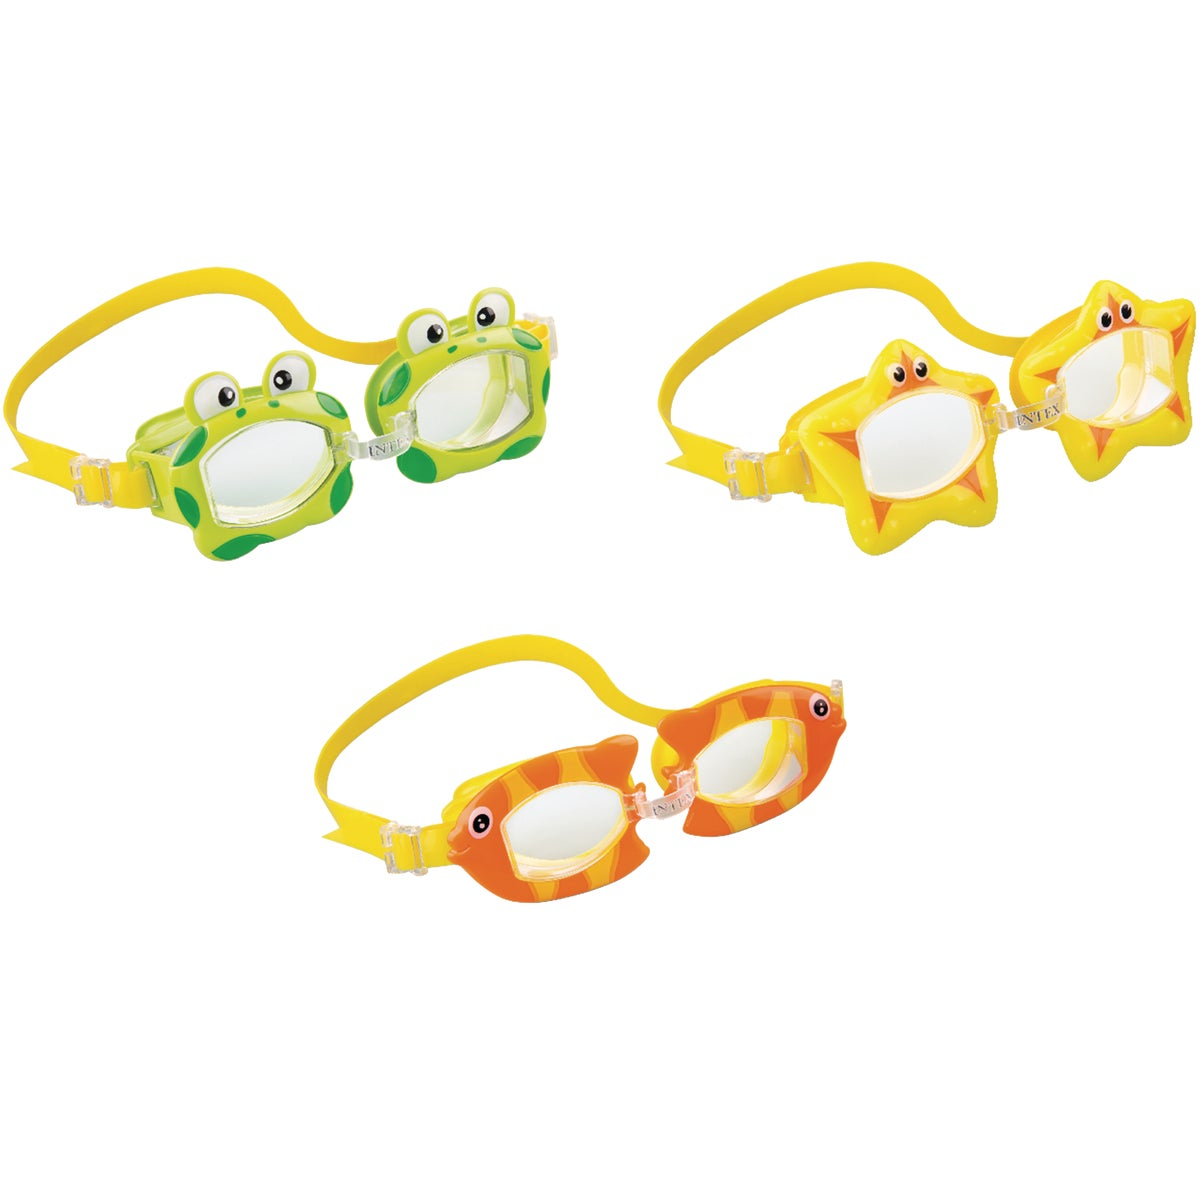 FUN GOGGLES - 55603 by Intex Recreation